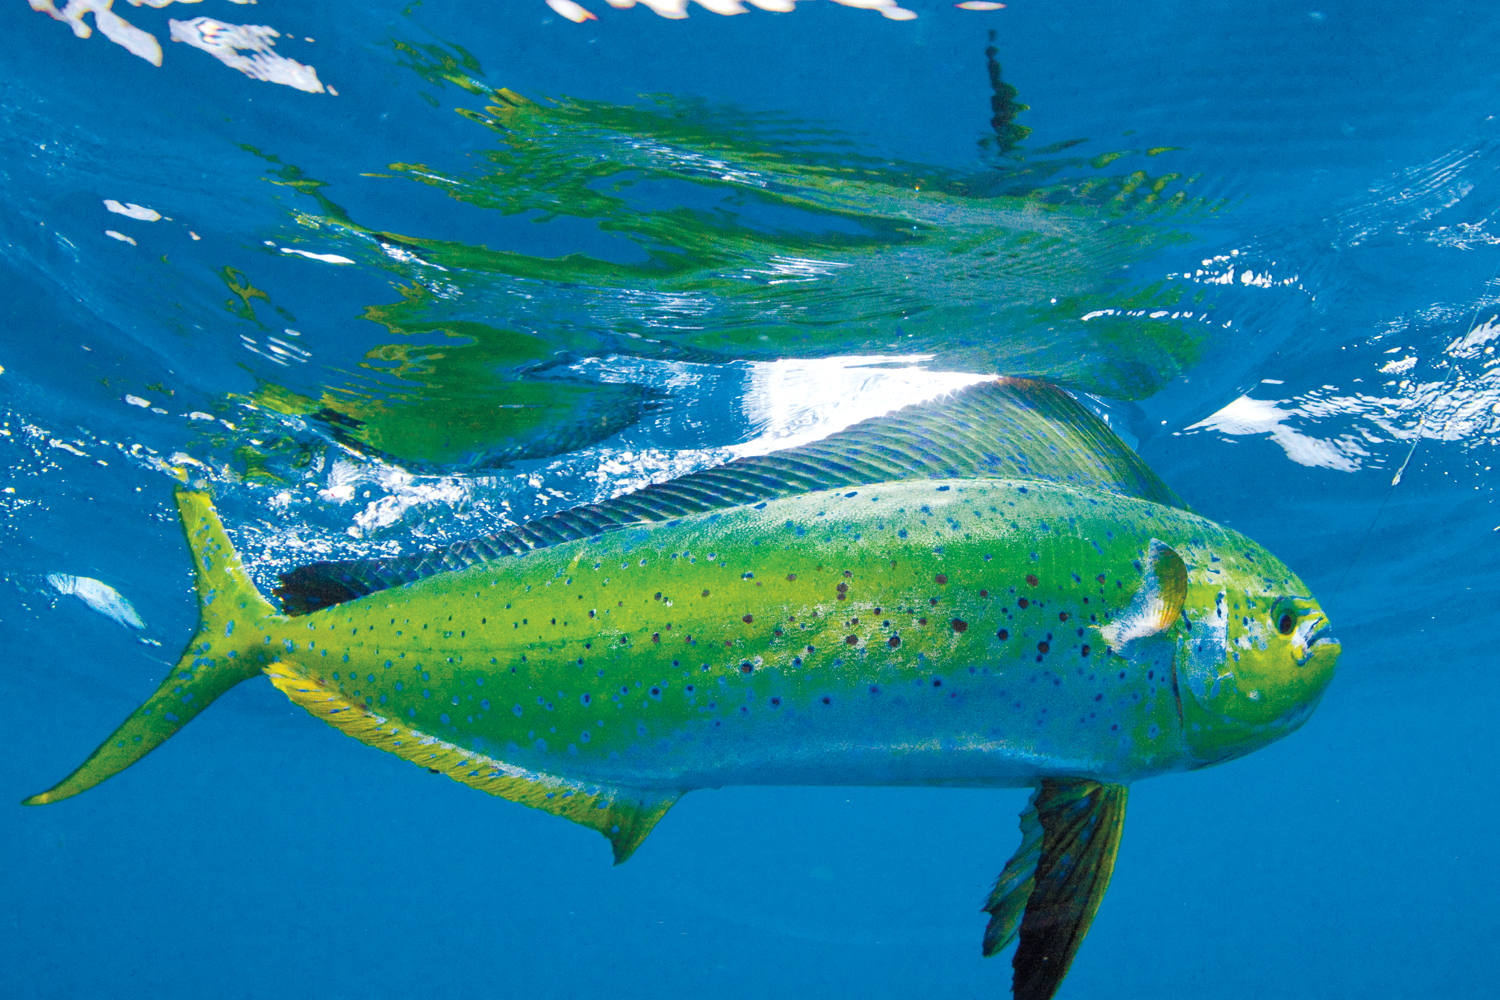 Mahi-mahi swims in ocean photo and wallpaper. Cute Mahi ...